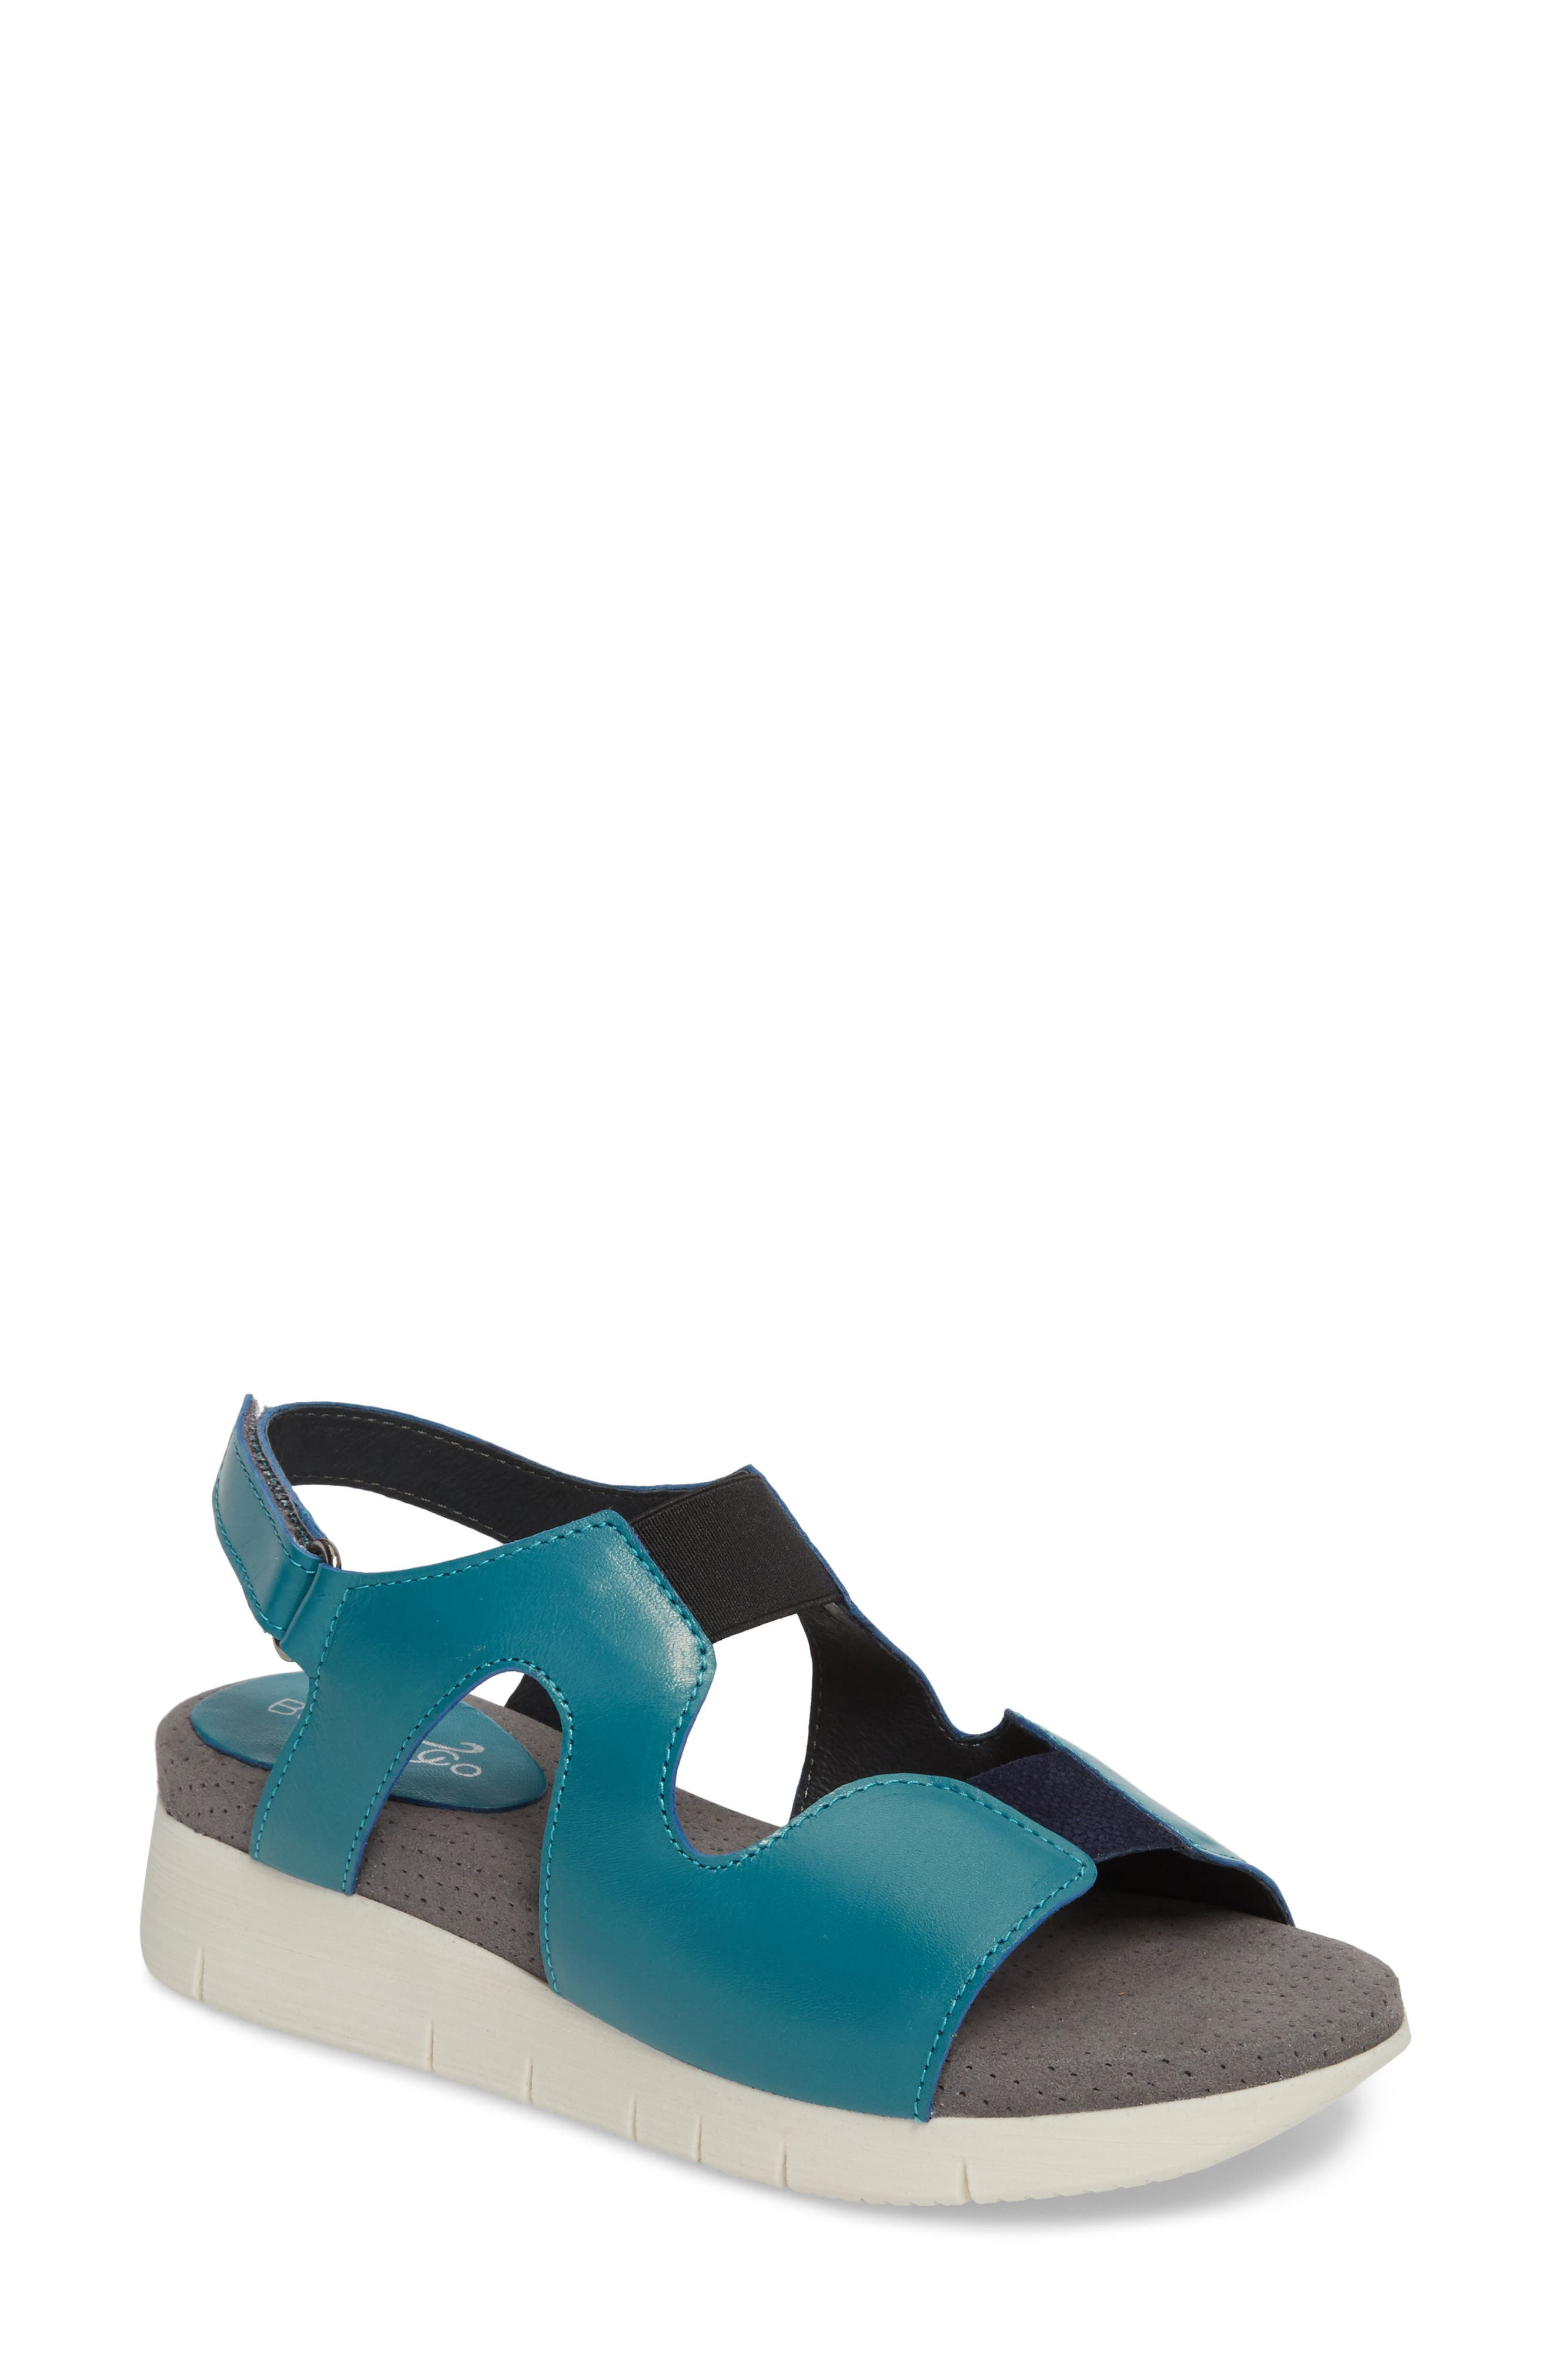 Bos. & Co. Pori Sandal (Women)